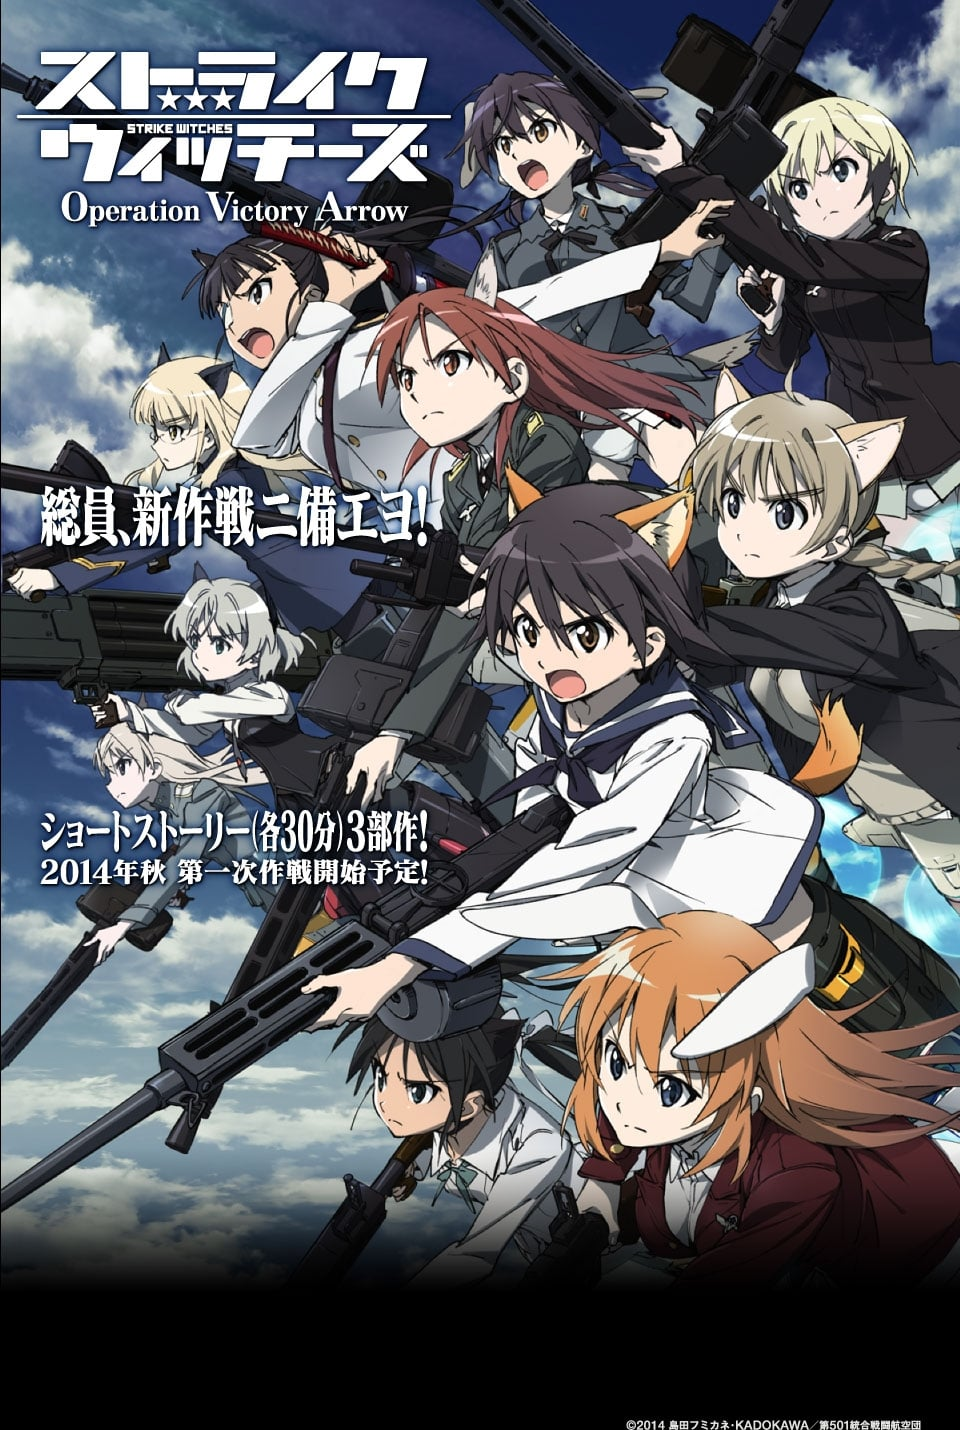 Strike Witches: Operation Victory Arrow Vol.1 - The Thunder of Saint-Trond (2014)